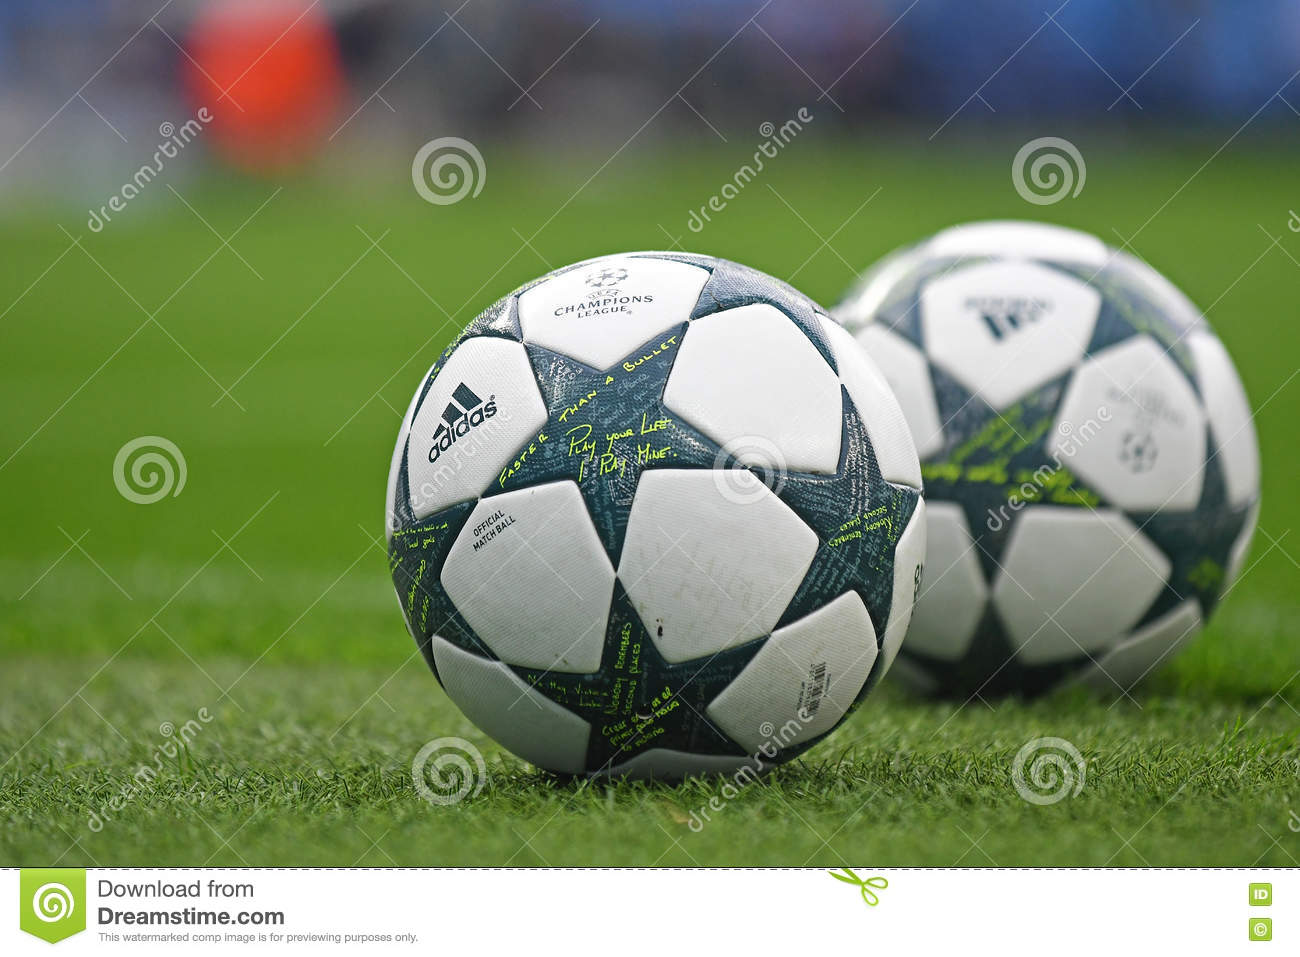 d563d32b9d2df 2016 2017 UEFA Champions League Official Ball Editorial Stock Photo ...